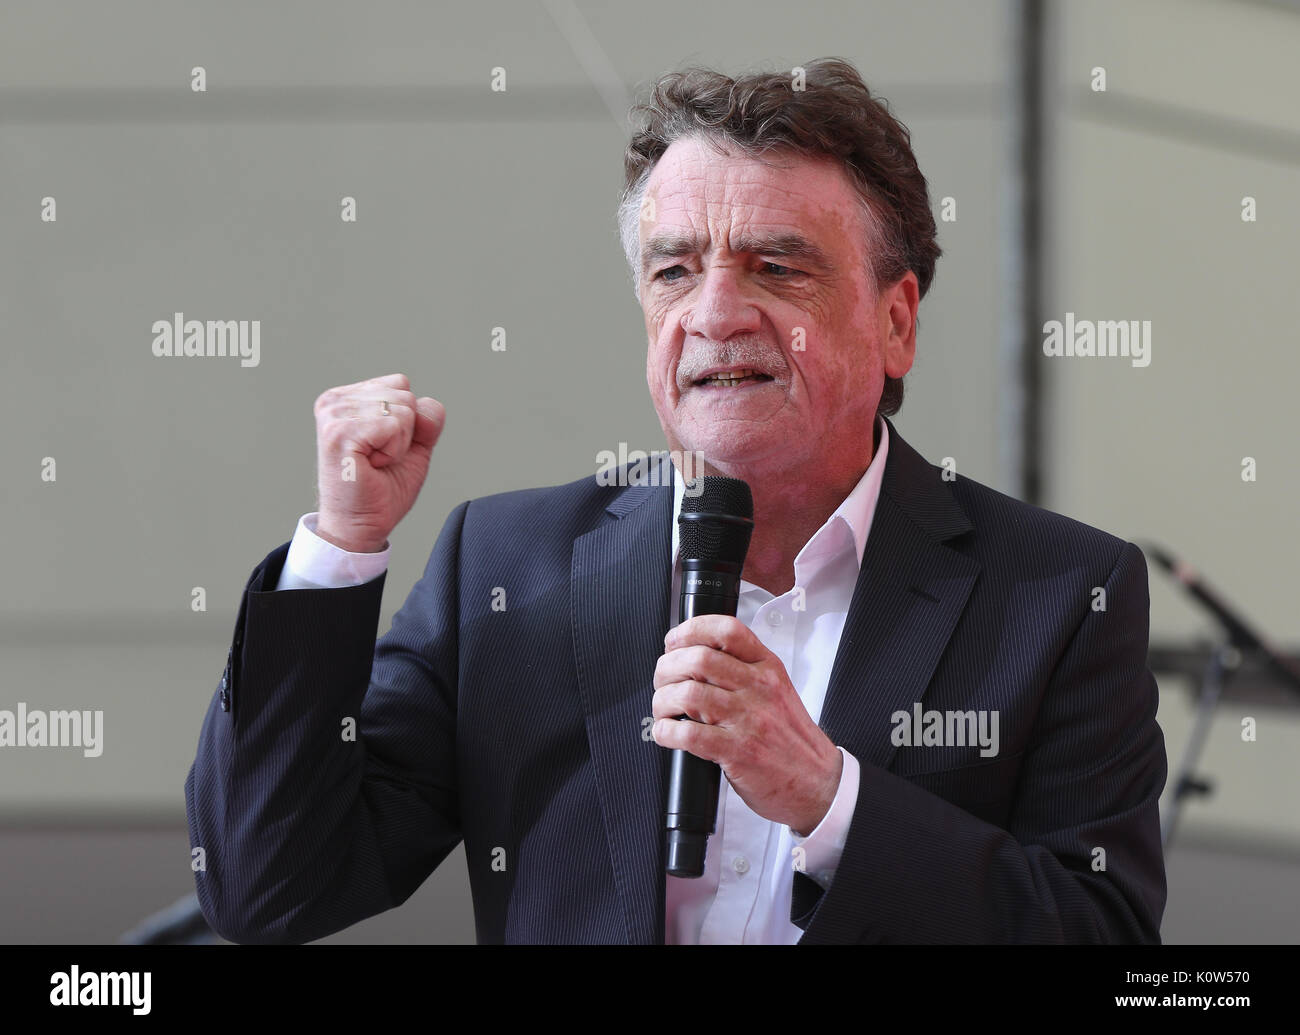 Essen, Germany. 24th Aug, 2017. North Rhine–Westphalias social democratic party chairman Michael Groschek speaks during a campaign rally. Credit: Juergen Schwarz/Alamy Live News - Stock Image